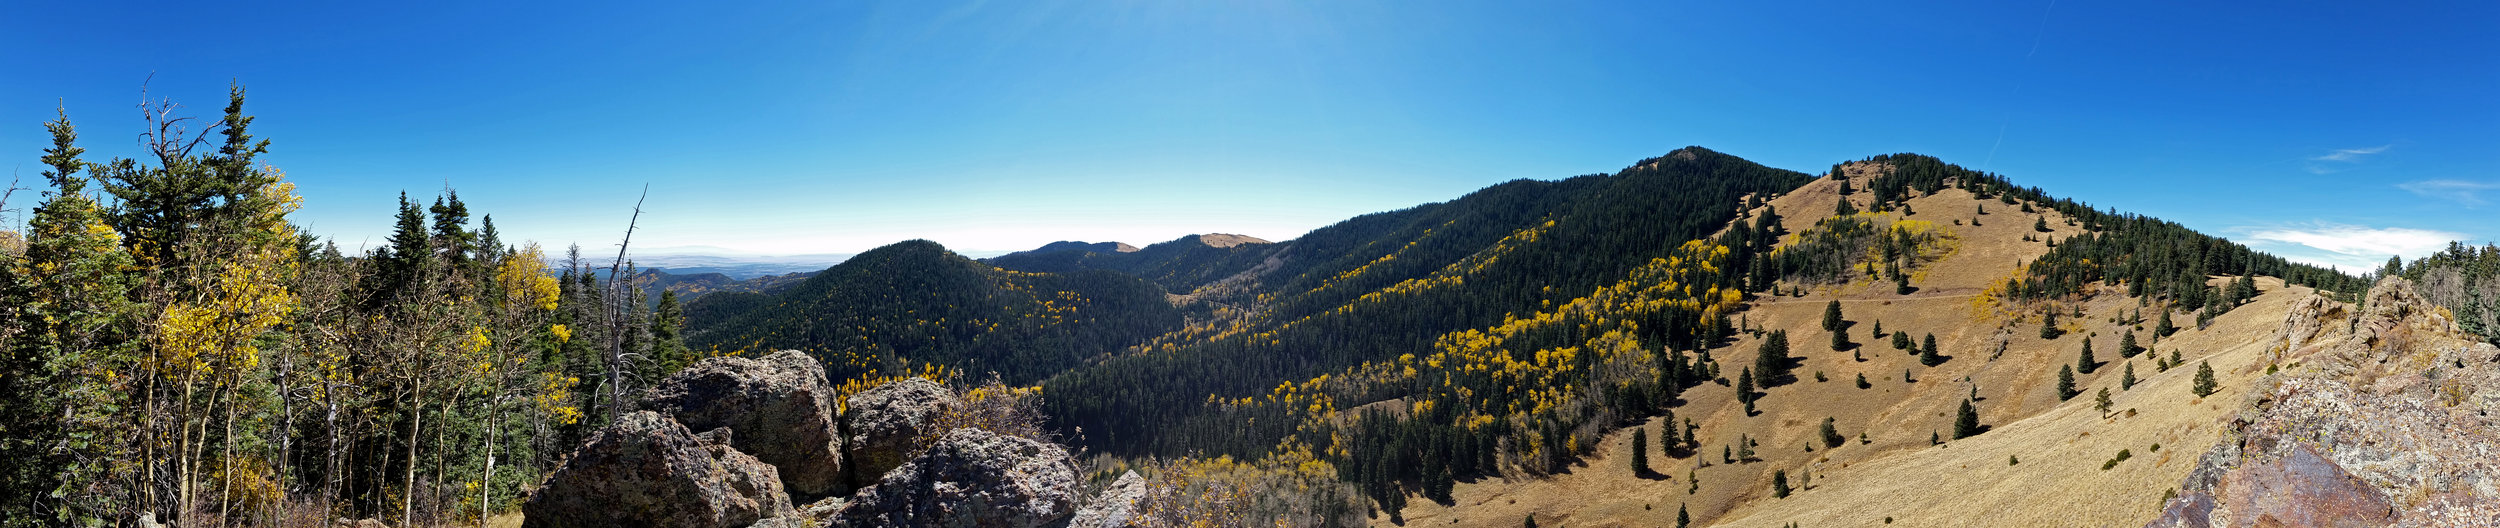 180+ degree panorama, taken from my ceremonial site in the Mt. Taylor caldera.  The 11, 305' summit is on the center right.  Click on this and all subsequent images to enlarge.